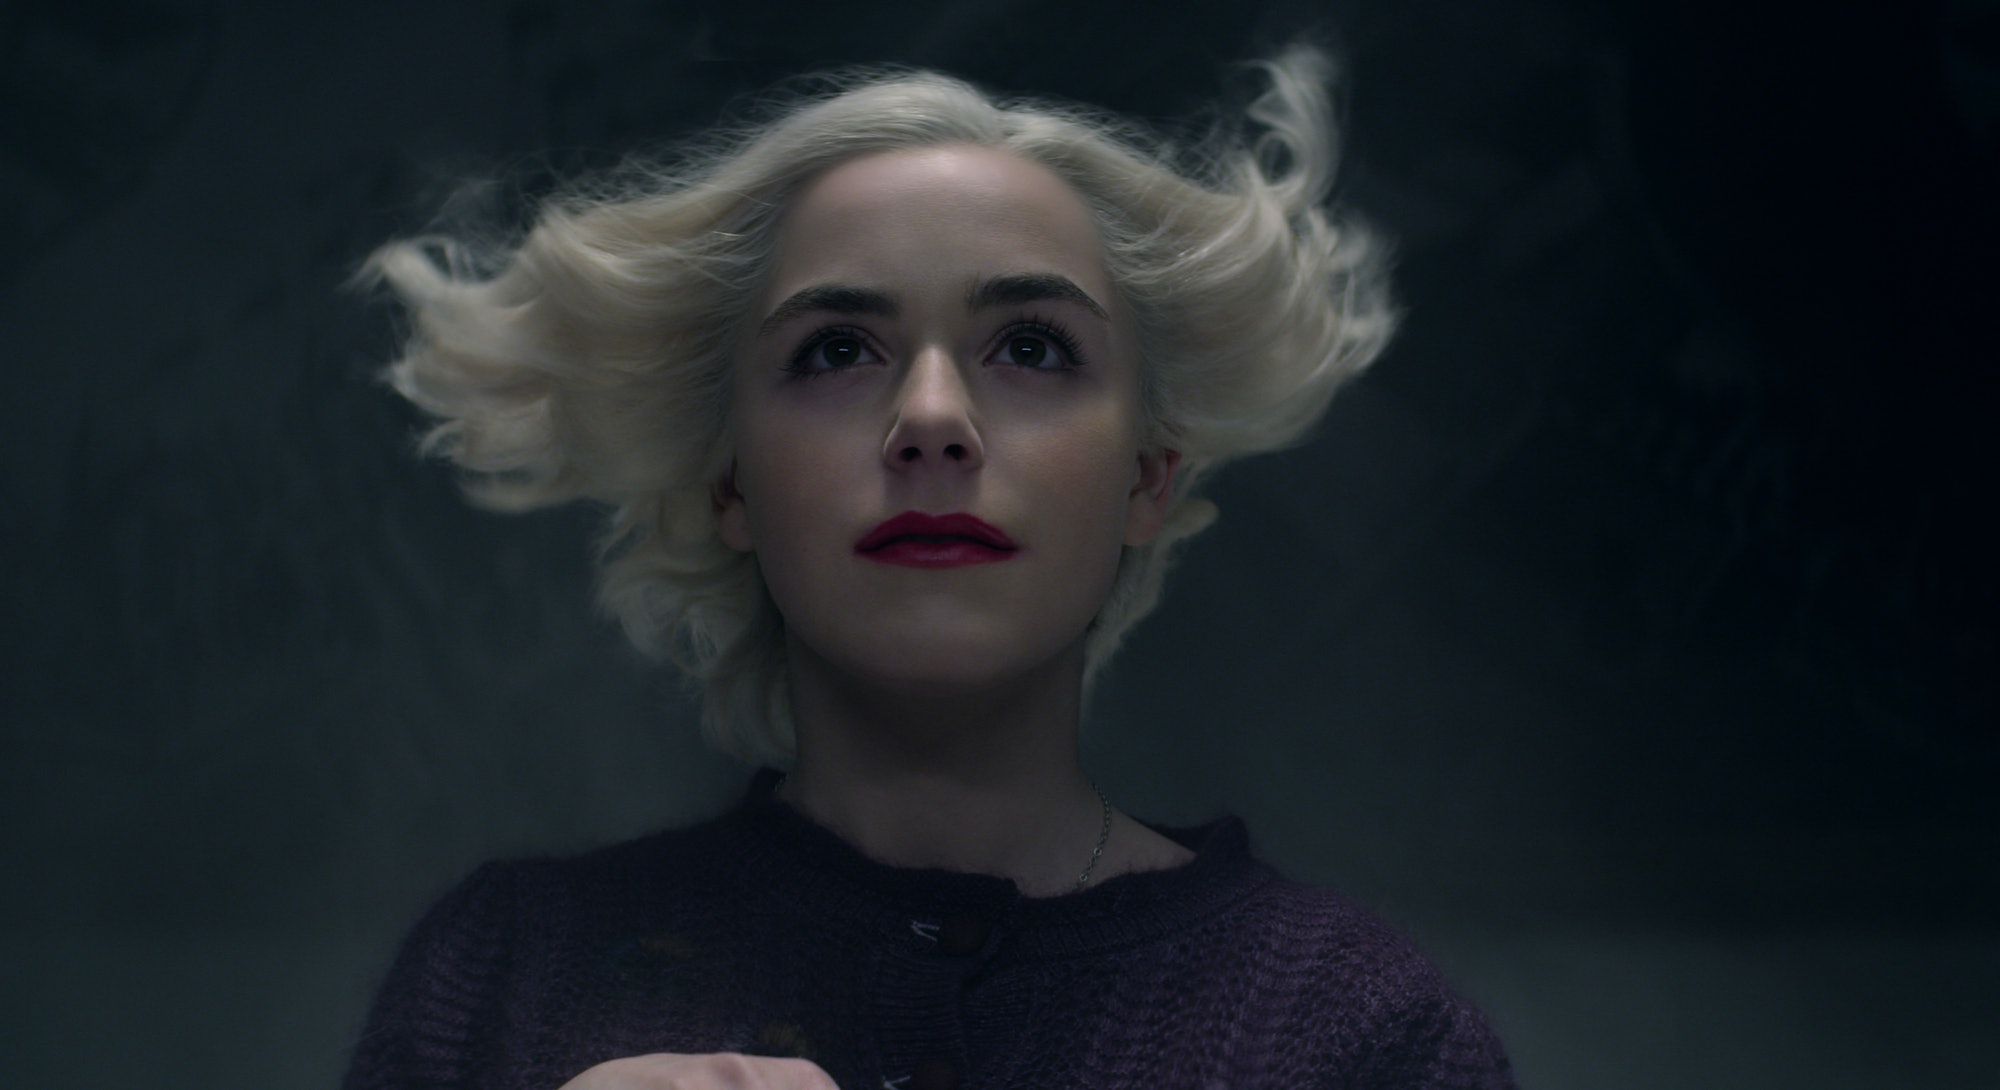 Kiernan Shipka in 'Chilling Adventures of Sabrina,' via the Netflix press site.